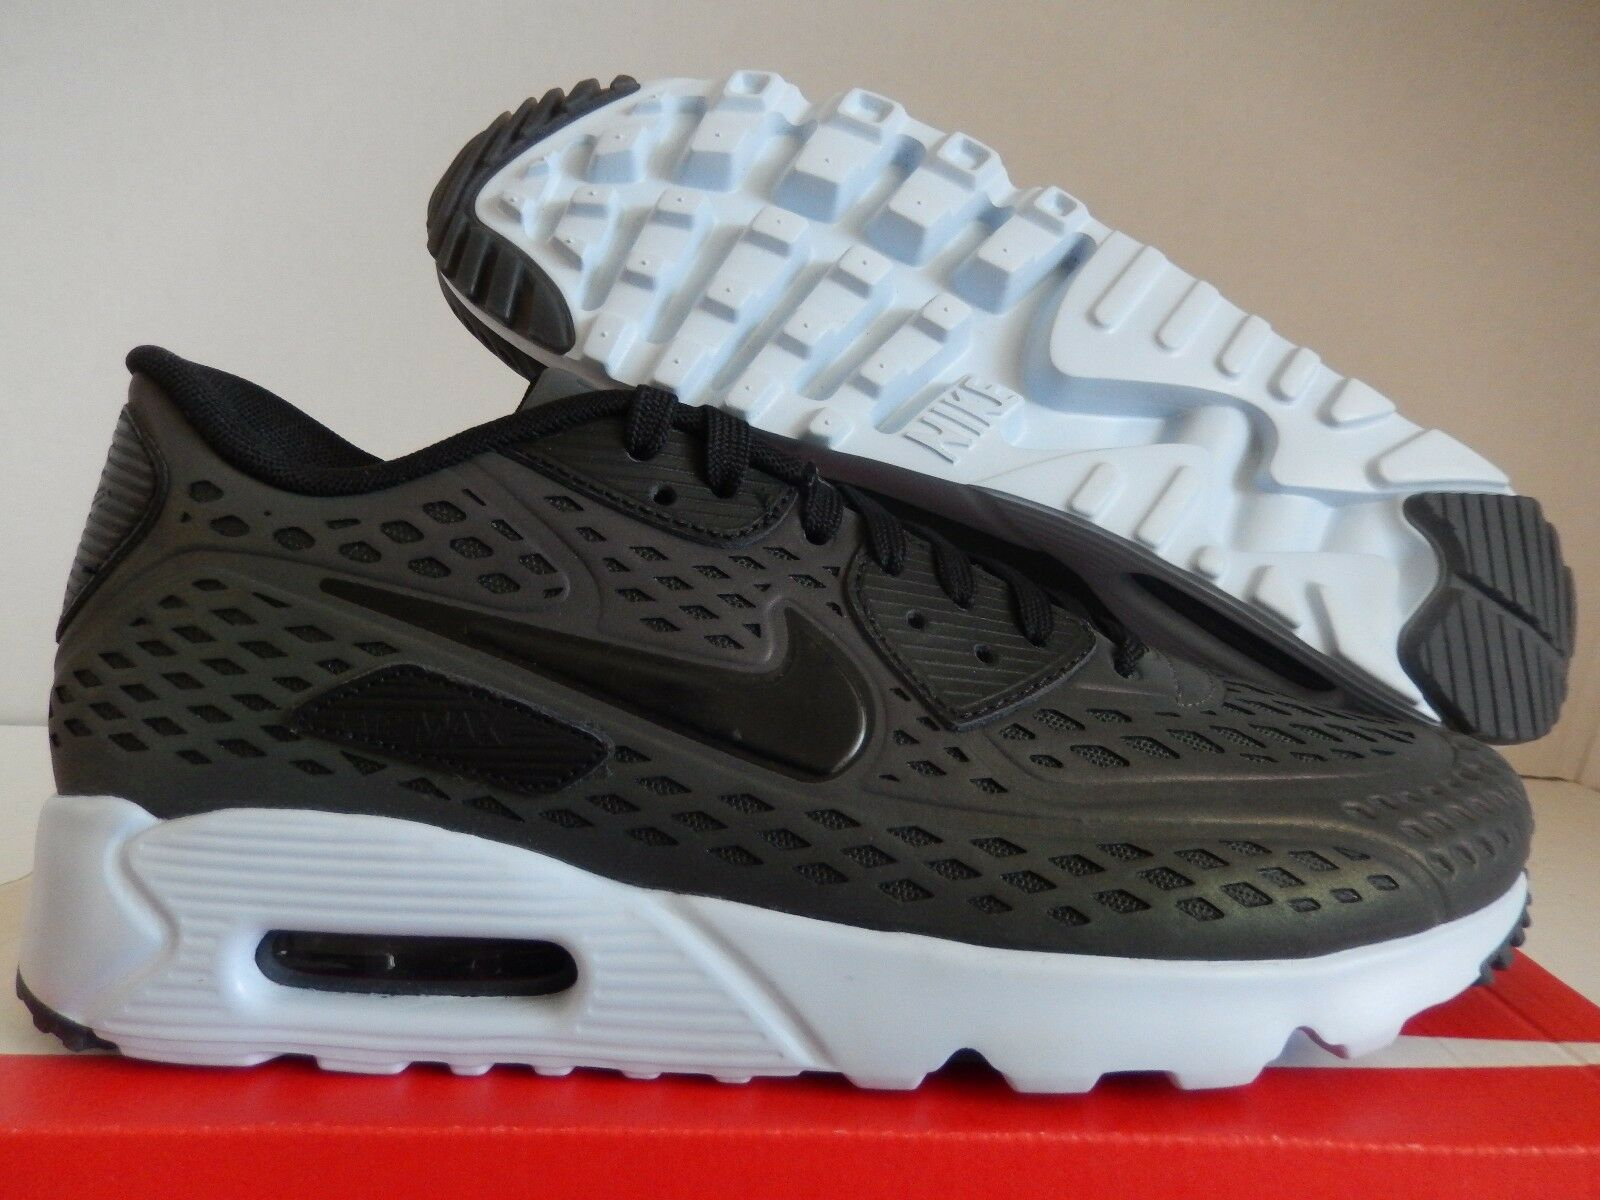 "Air Max 90 Ultra Moire Iridescent nike air max 90 ultra moire qs deep pewter ""iridescent"" sz 9.5 [777427-200]"